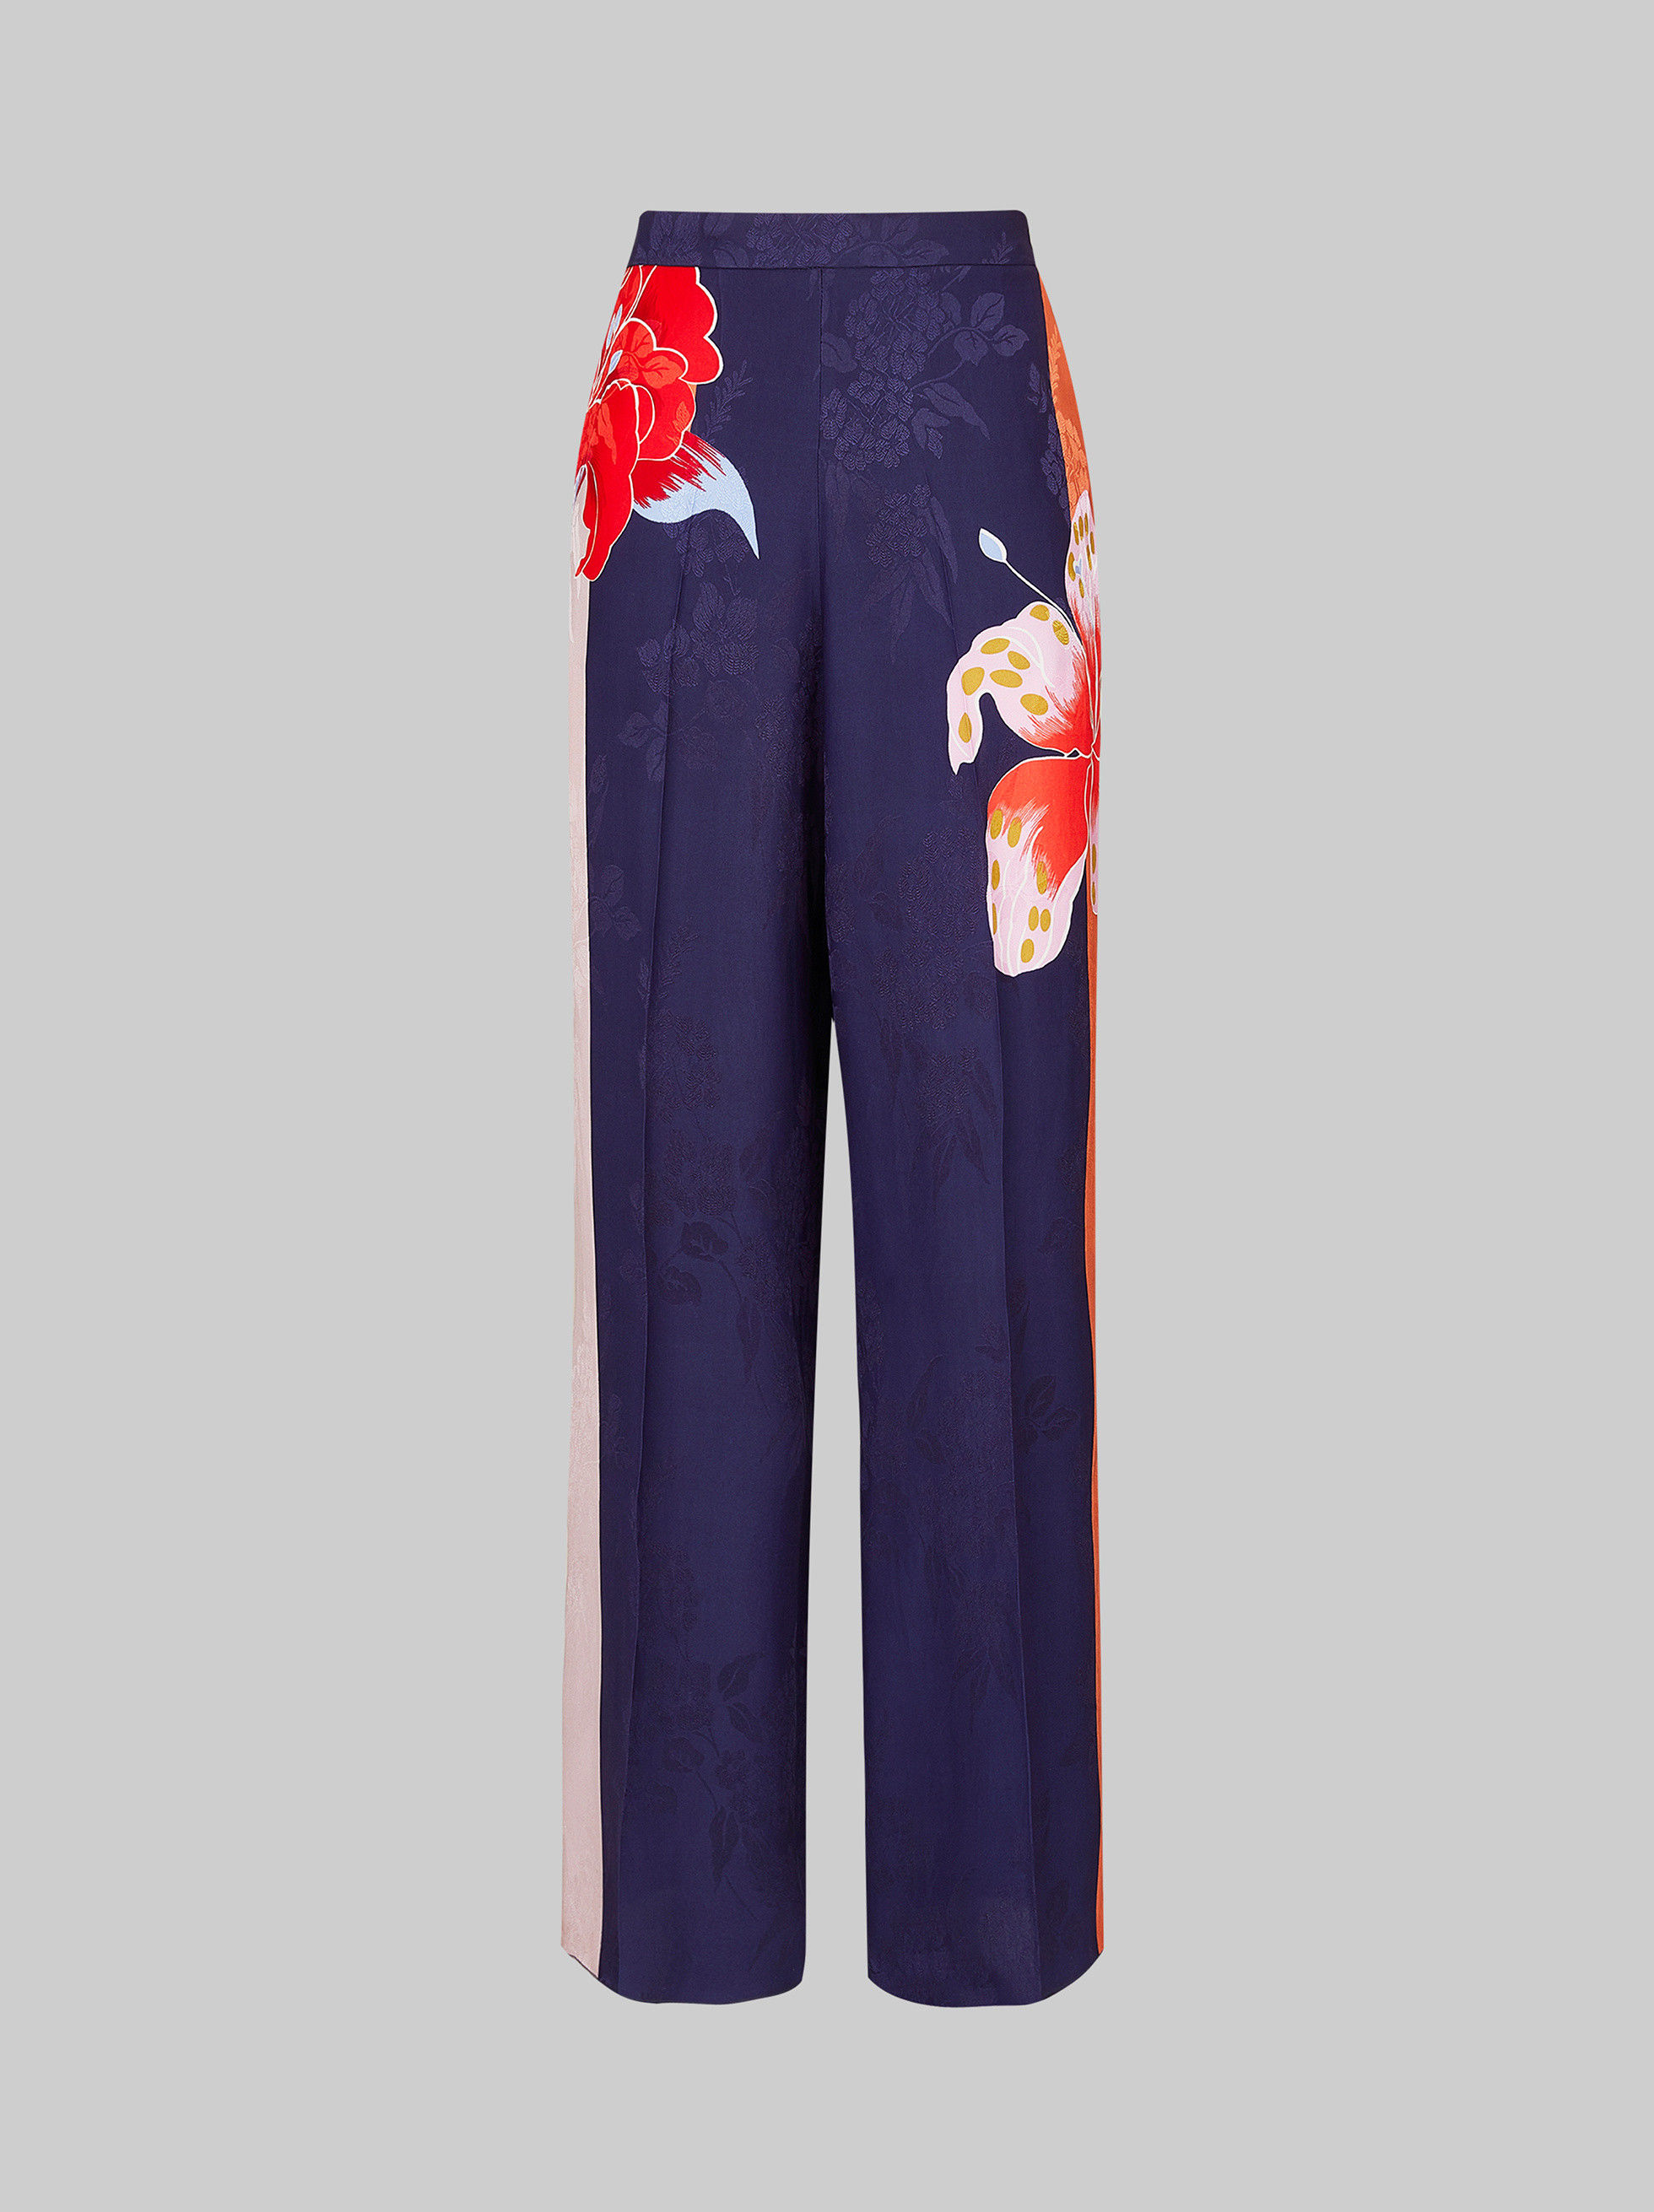 FLORAL JACQUARD PALAZZO TROUSERS